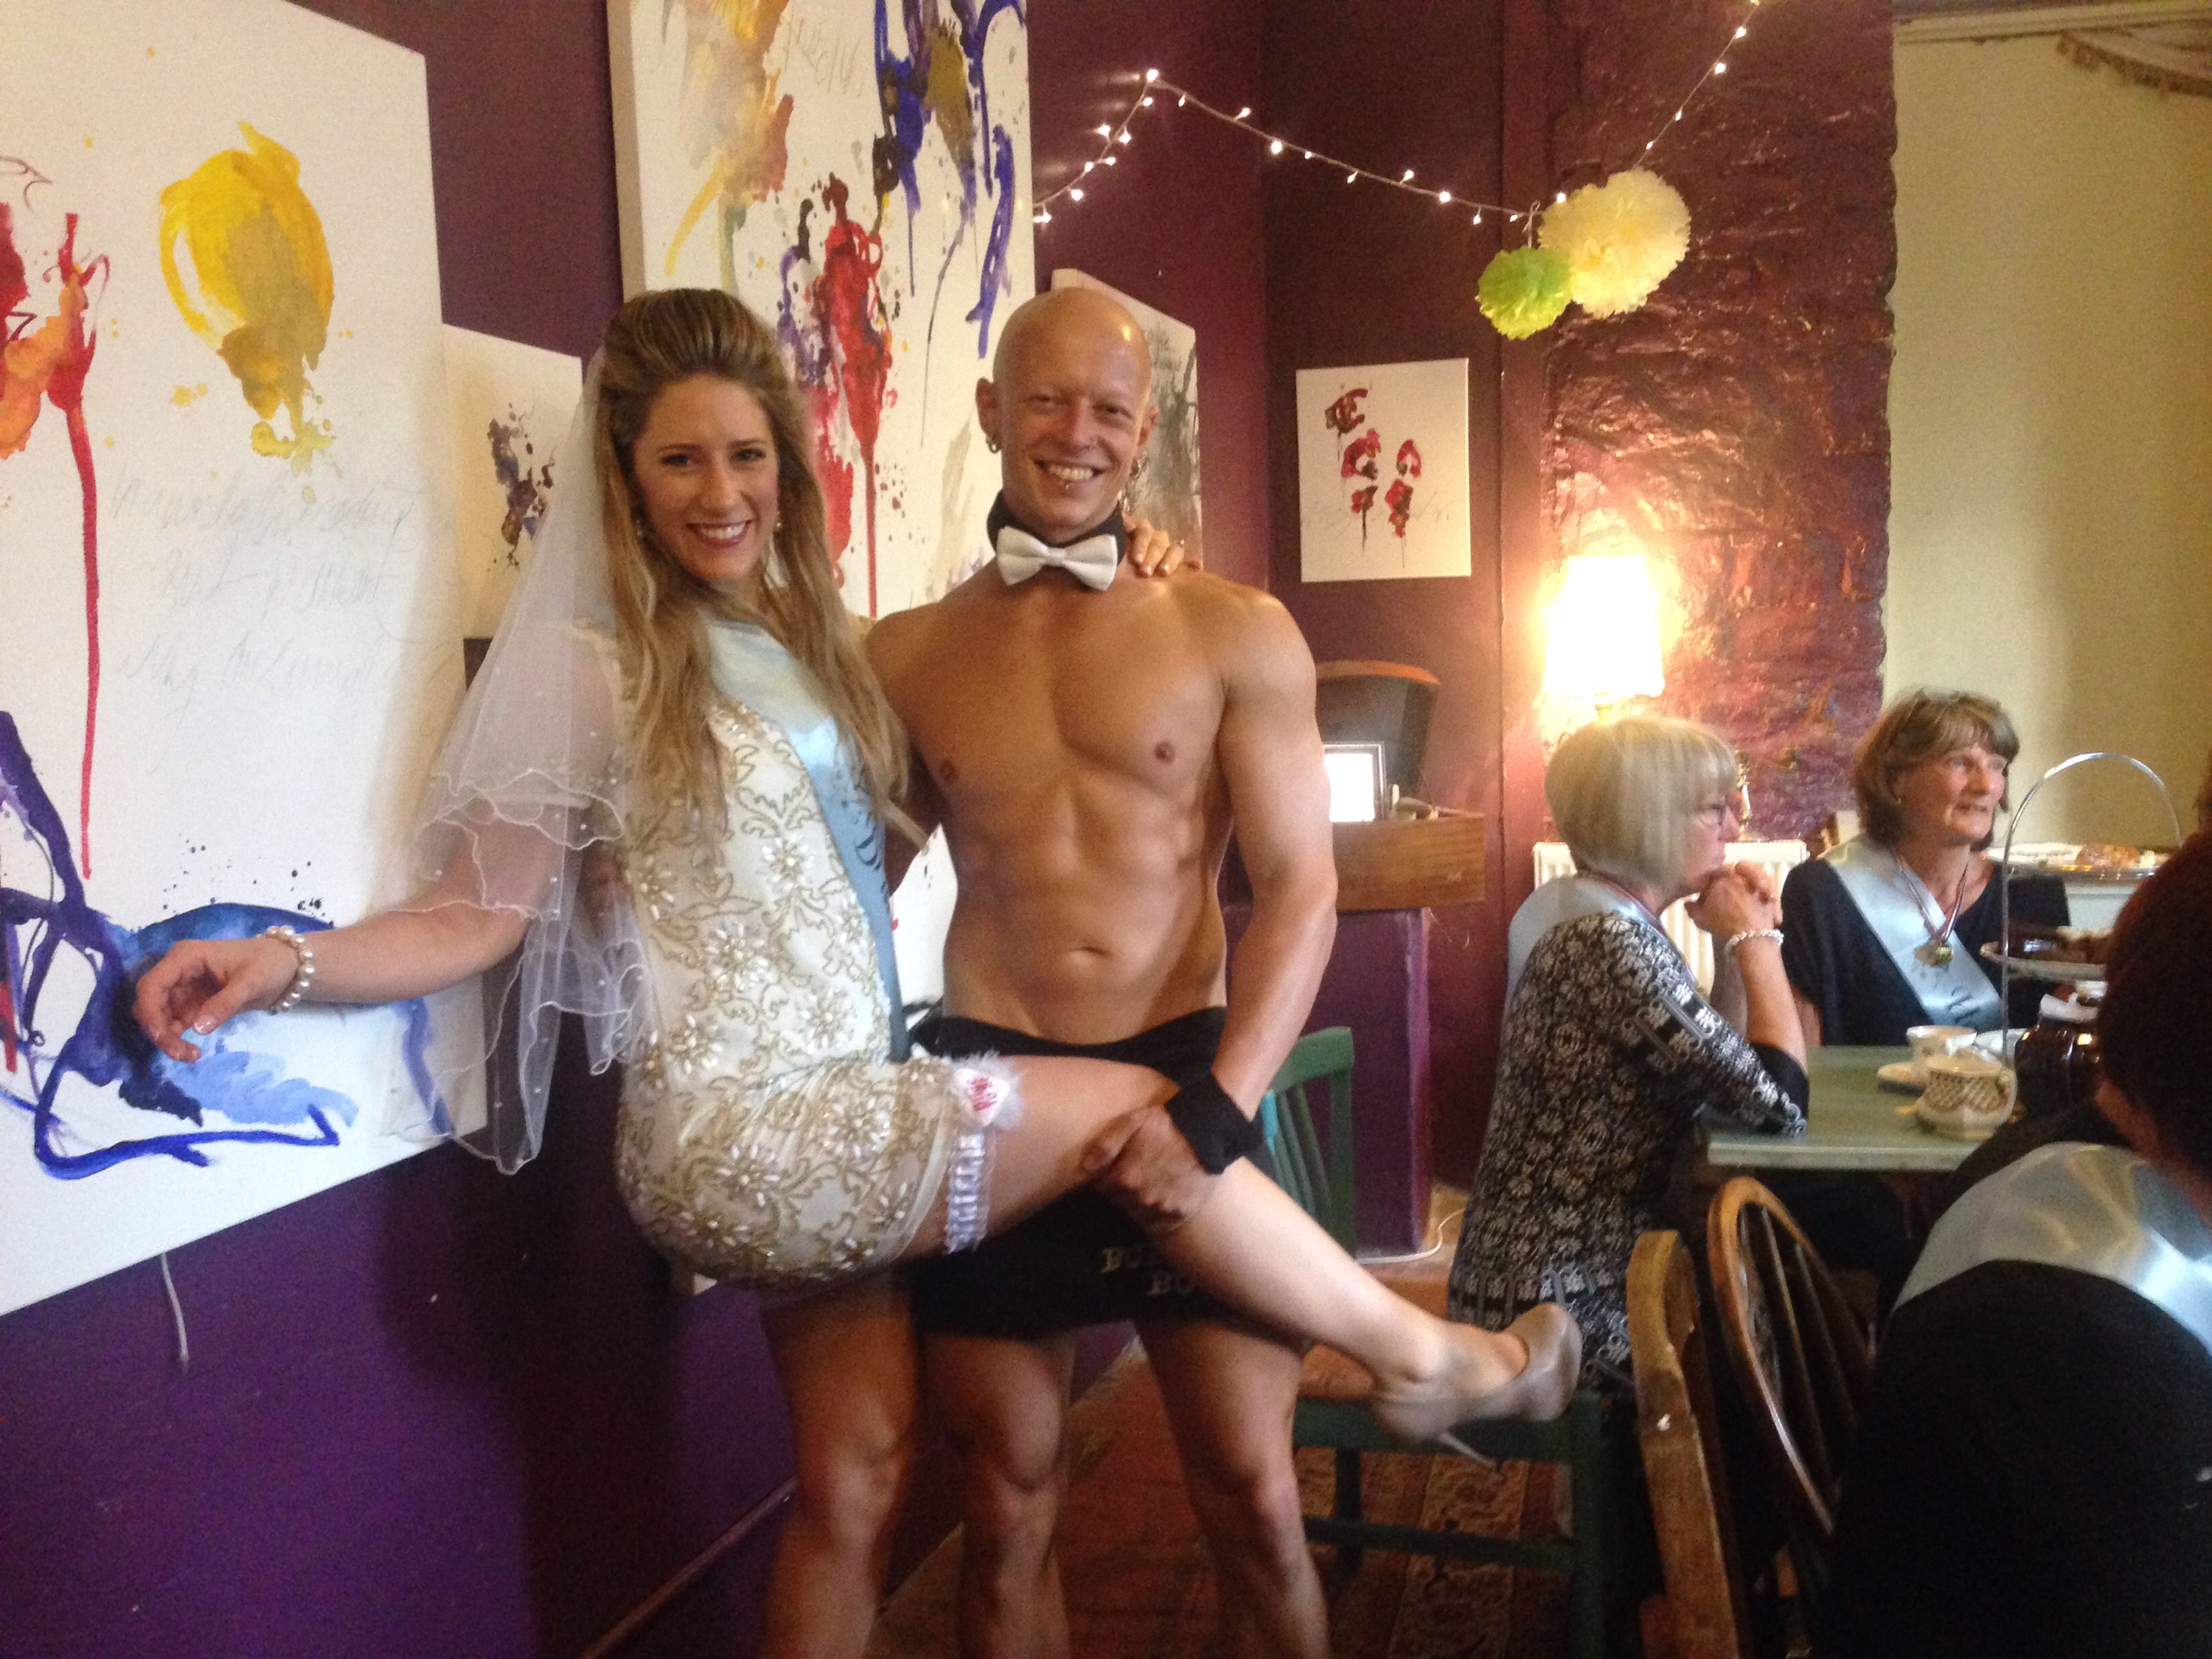 Hen Party Buff Butler - Bristol - Bath - 07747571426 benlowrey@me.com